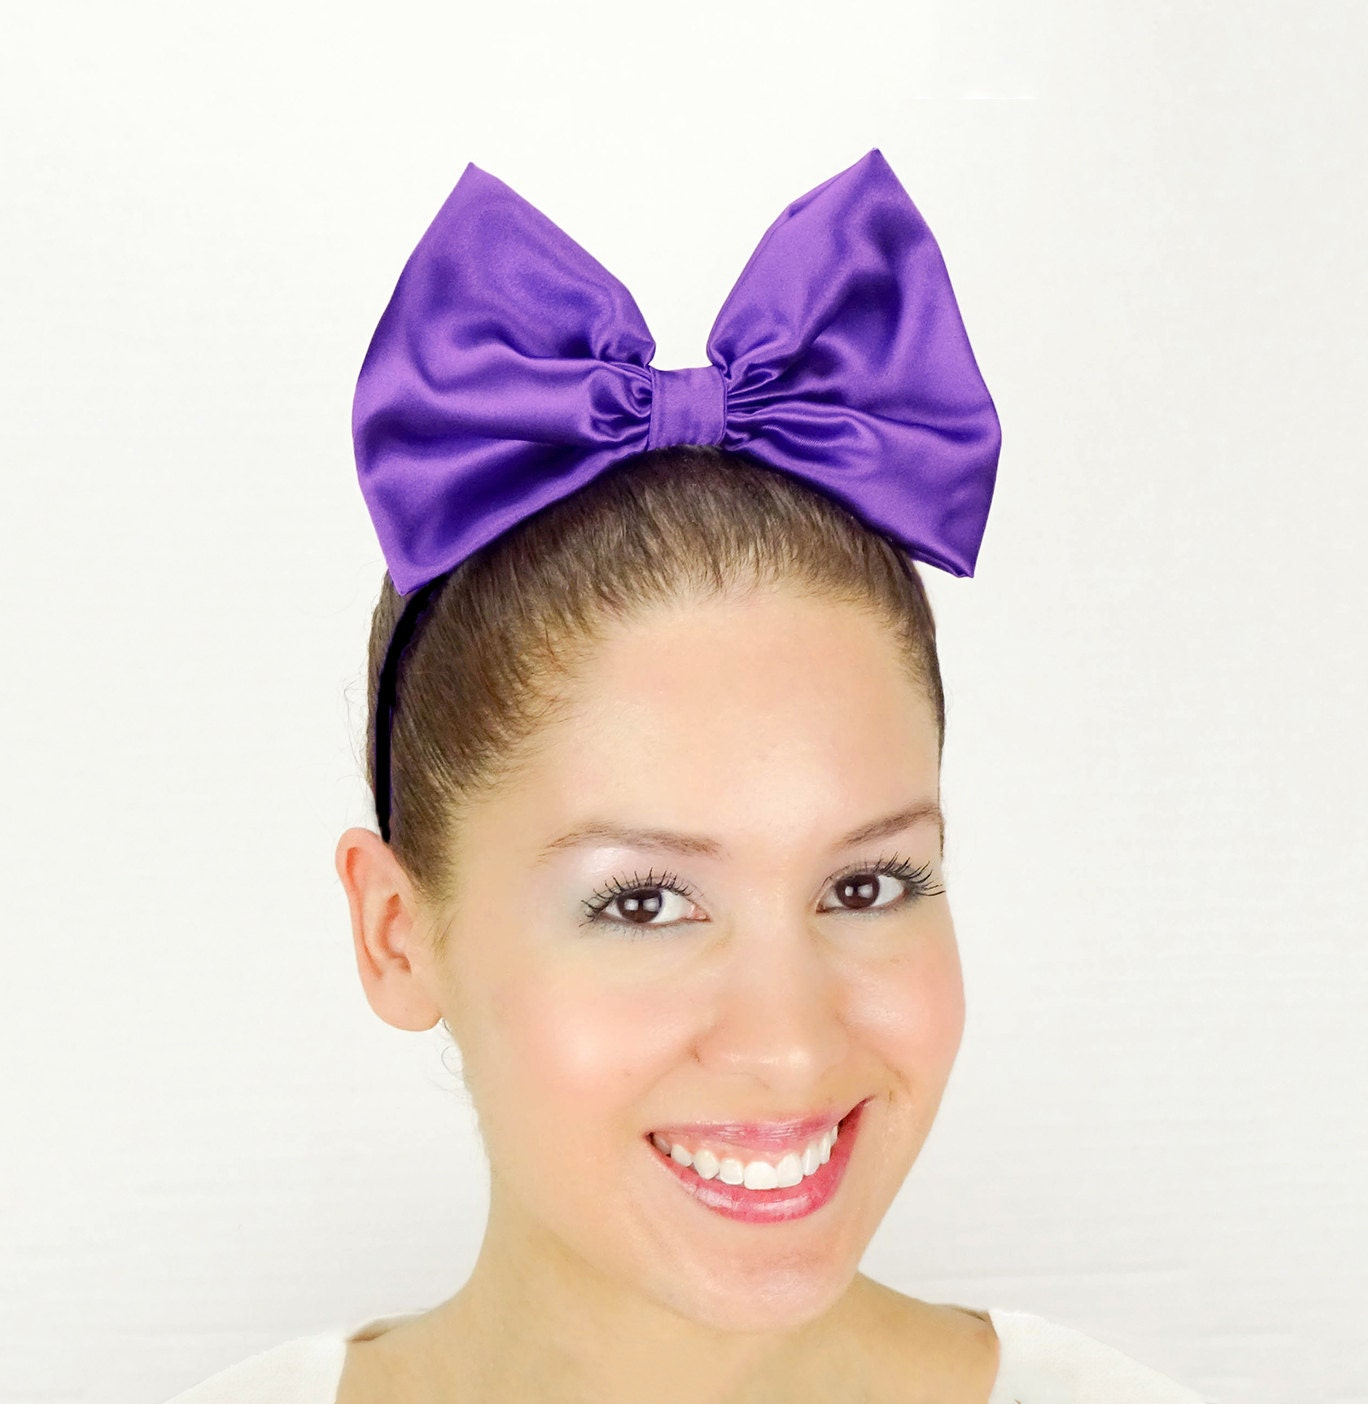 <b>Daisy Duck</b> Headband Purple Minnie Mouse Halloween Costume Purple <b>Daisy Duck</b> ... - il_fullxfull.1084962205_g5z6